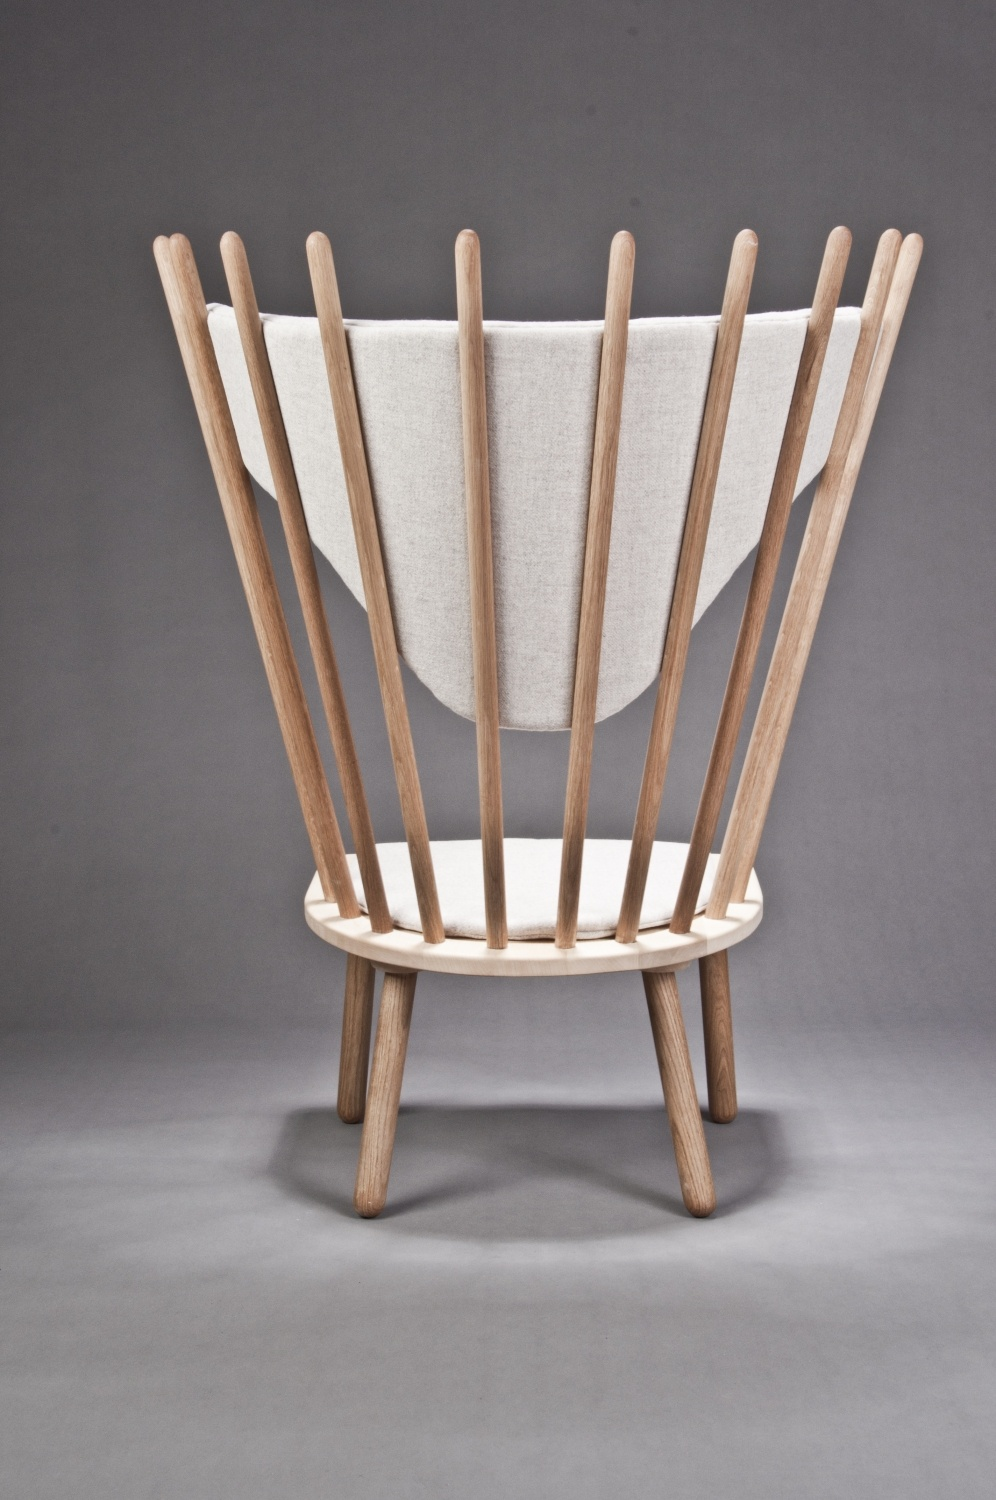 FLODEAU.COM - Sticks Armchair by Celina Rolmar - 03